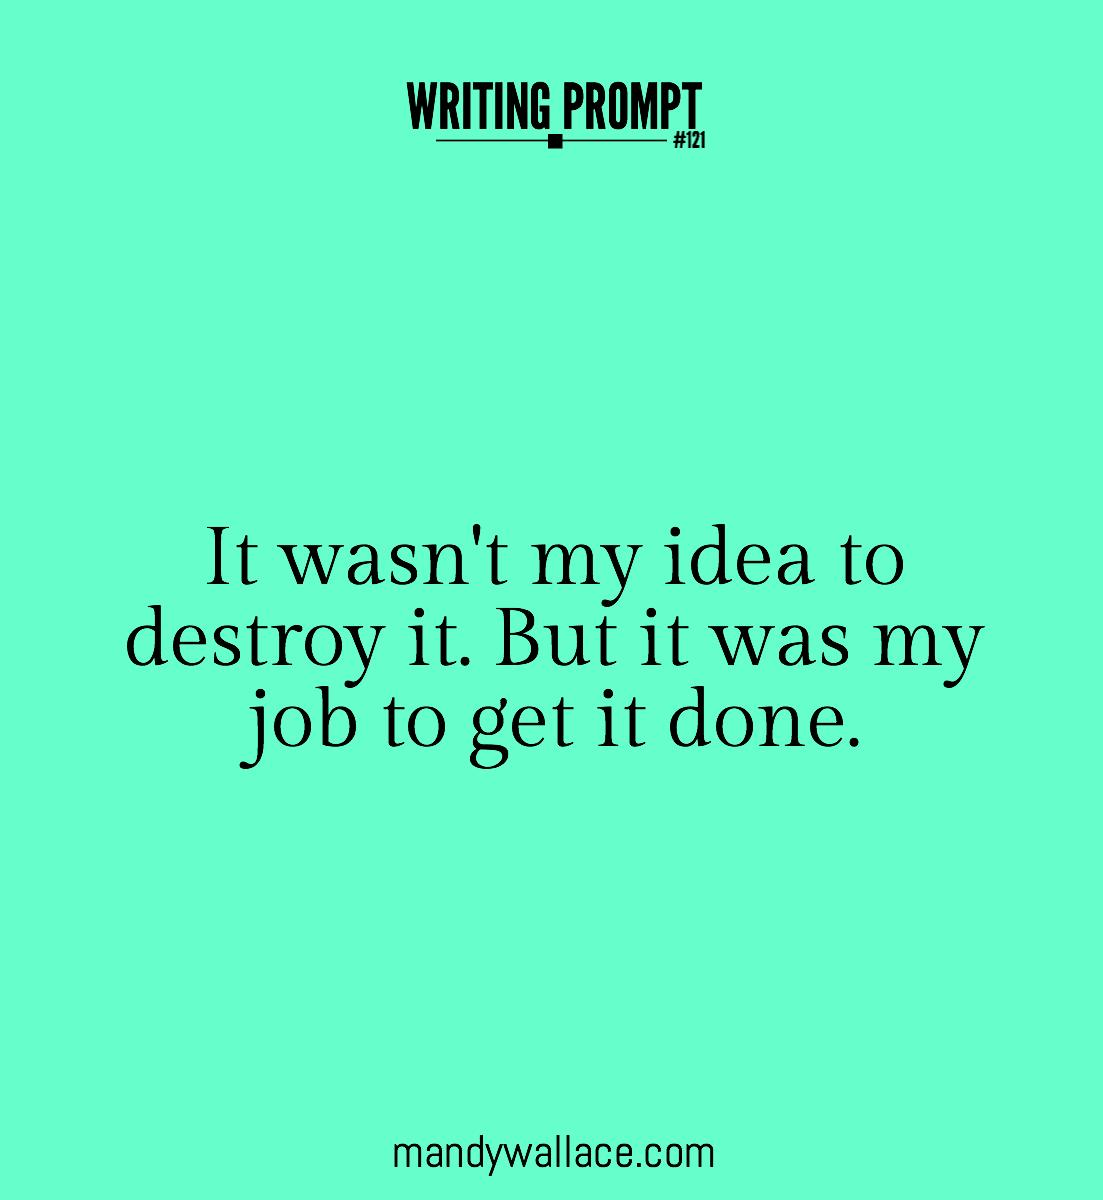 Writing prompt #121: It wasn't my idea to destroy it. But it was my job to get it done.